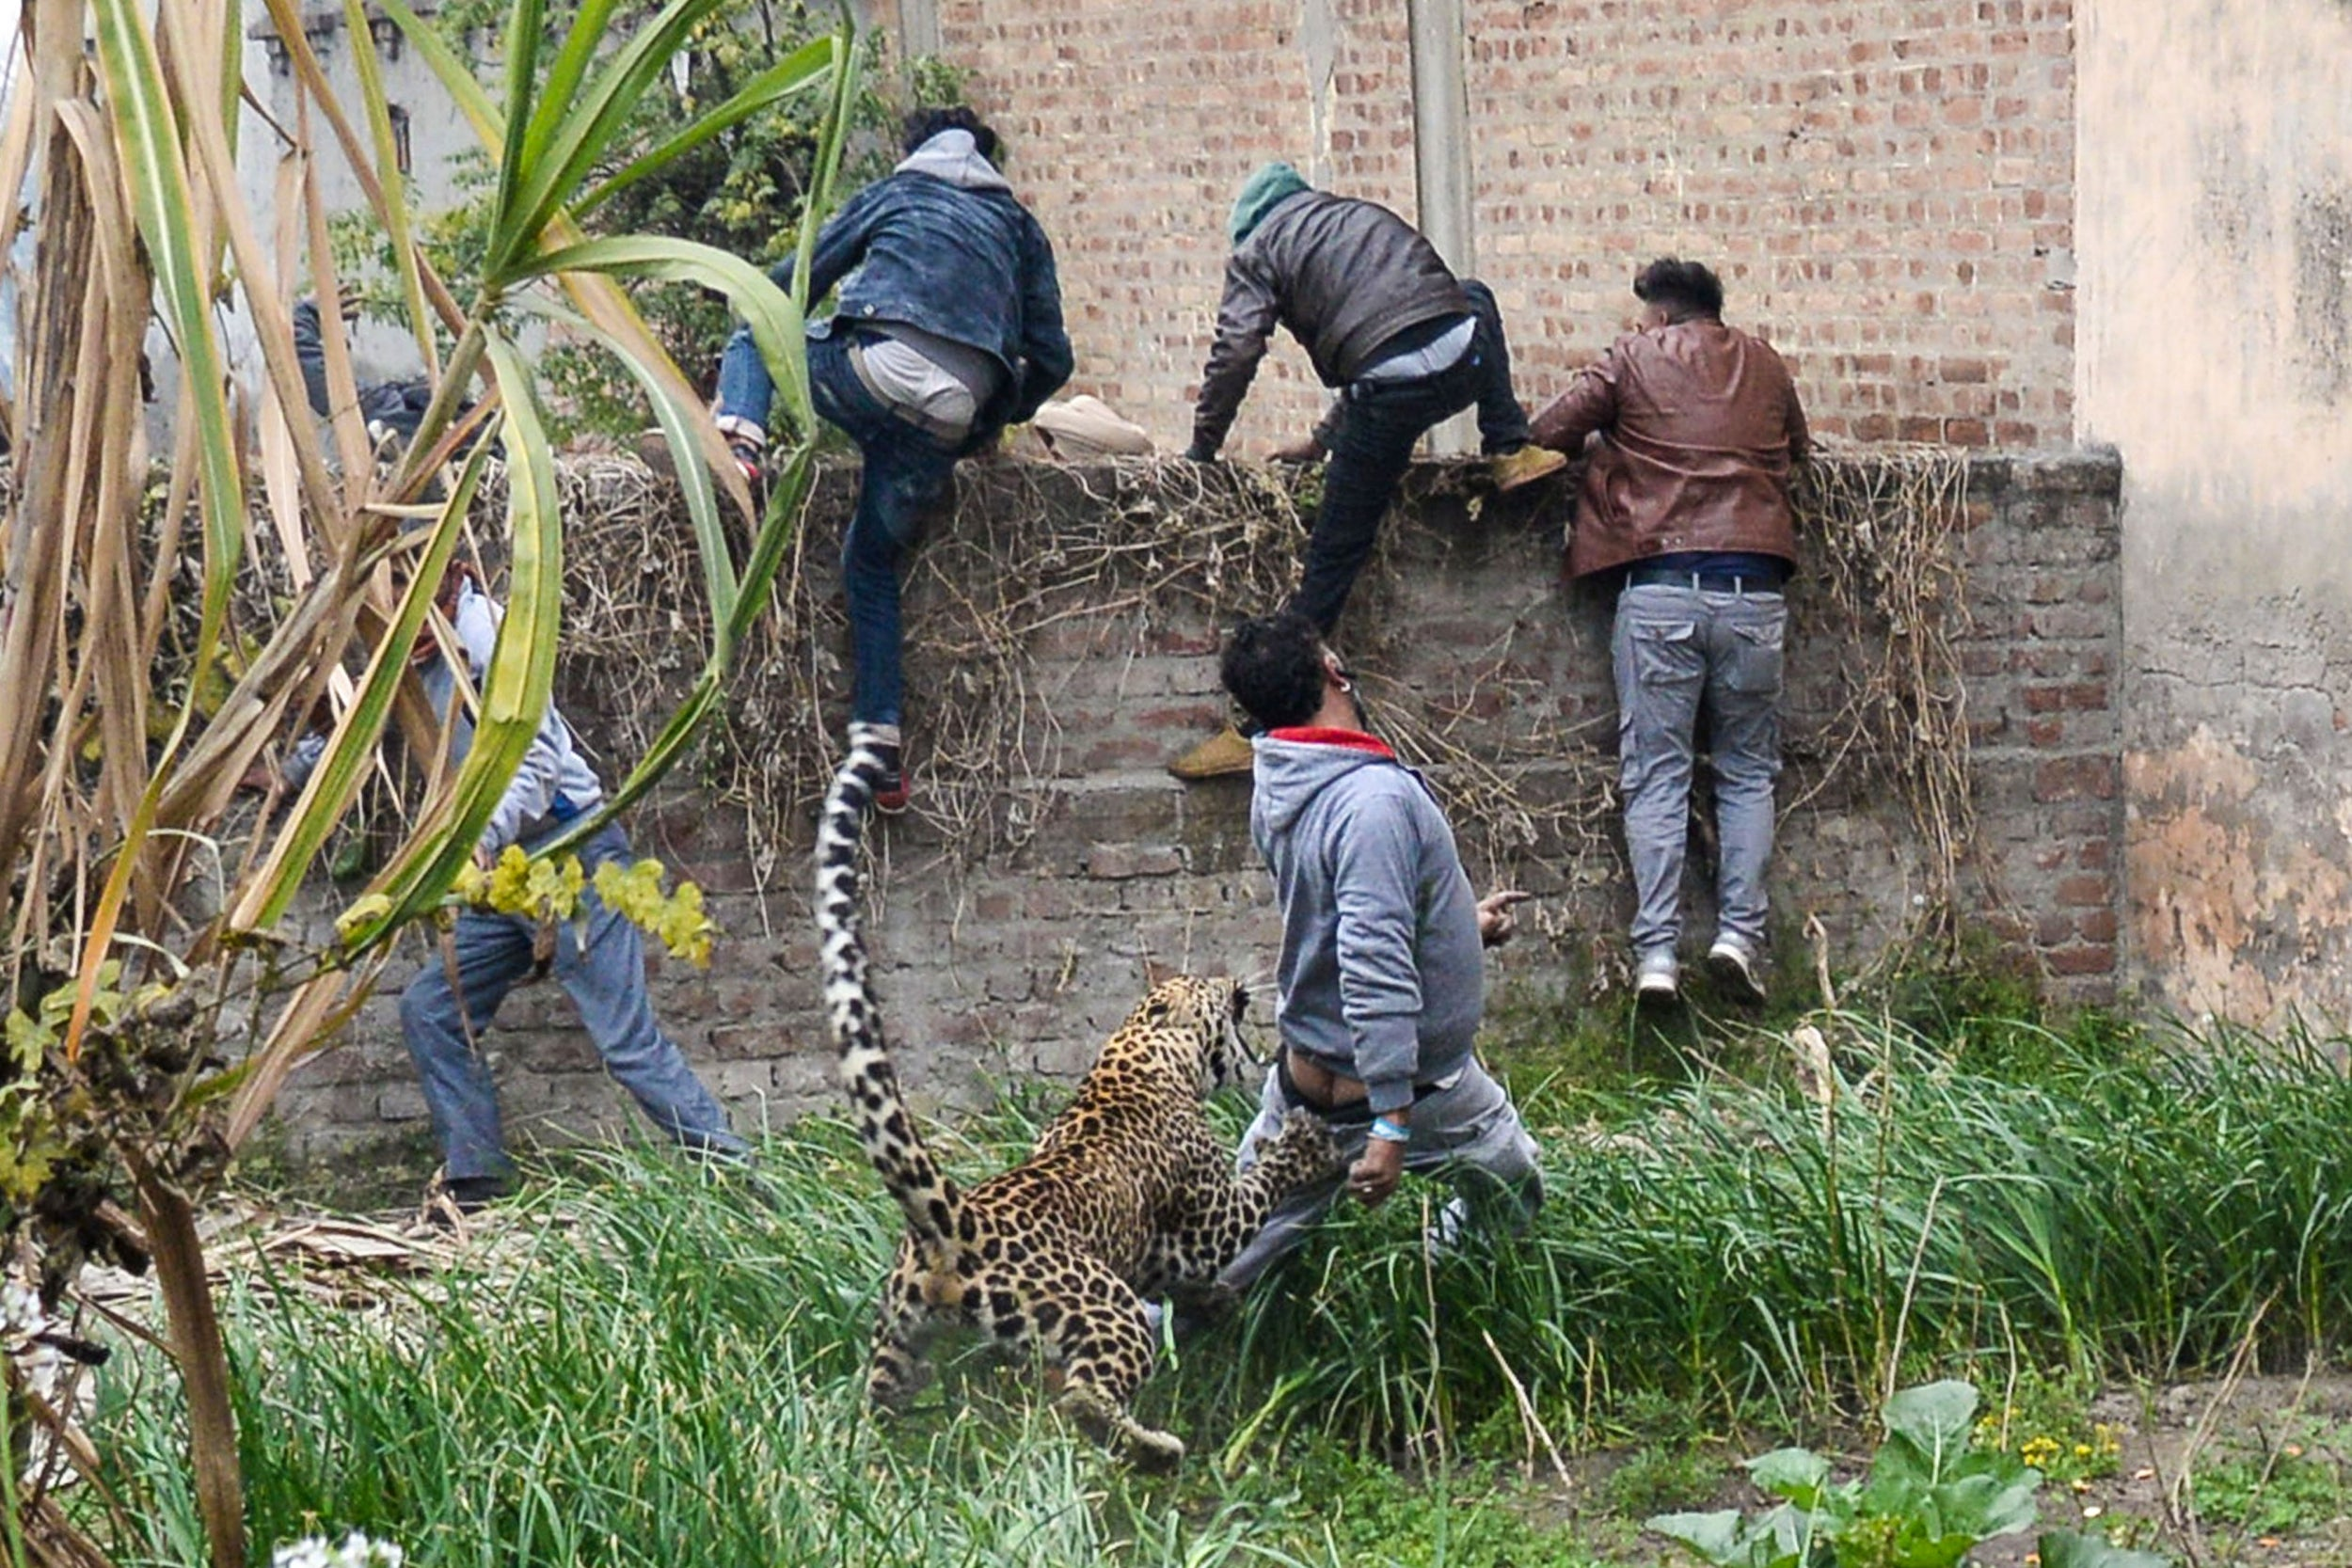 Leopard mauls several people in six-hour rampage through